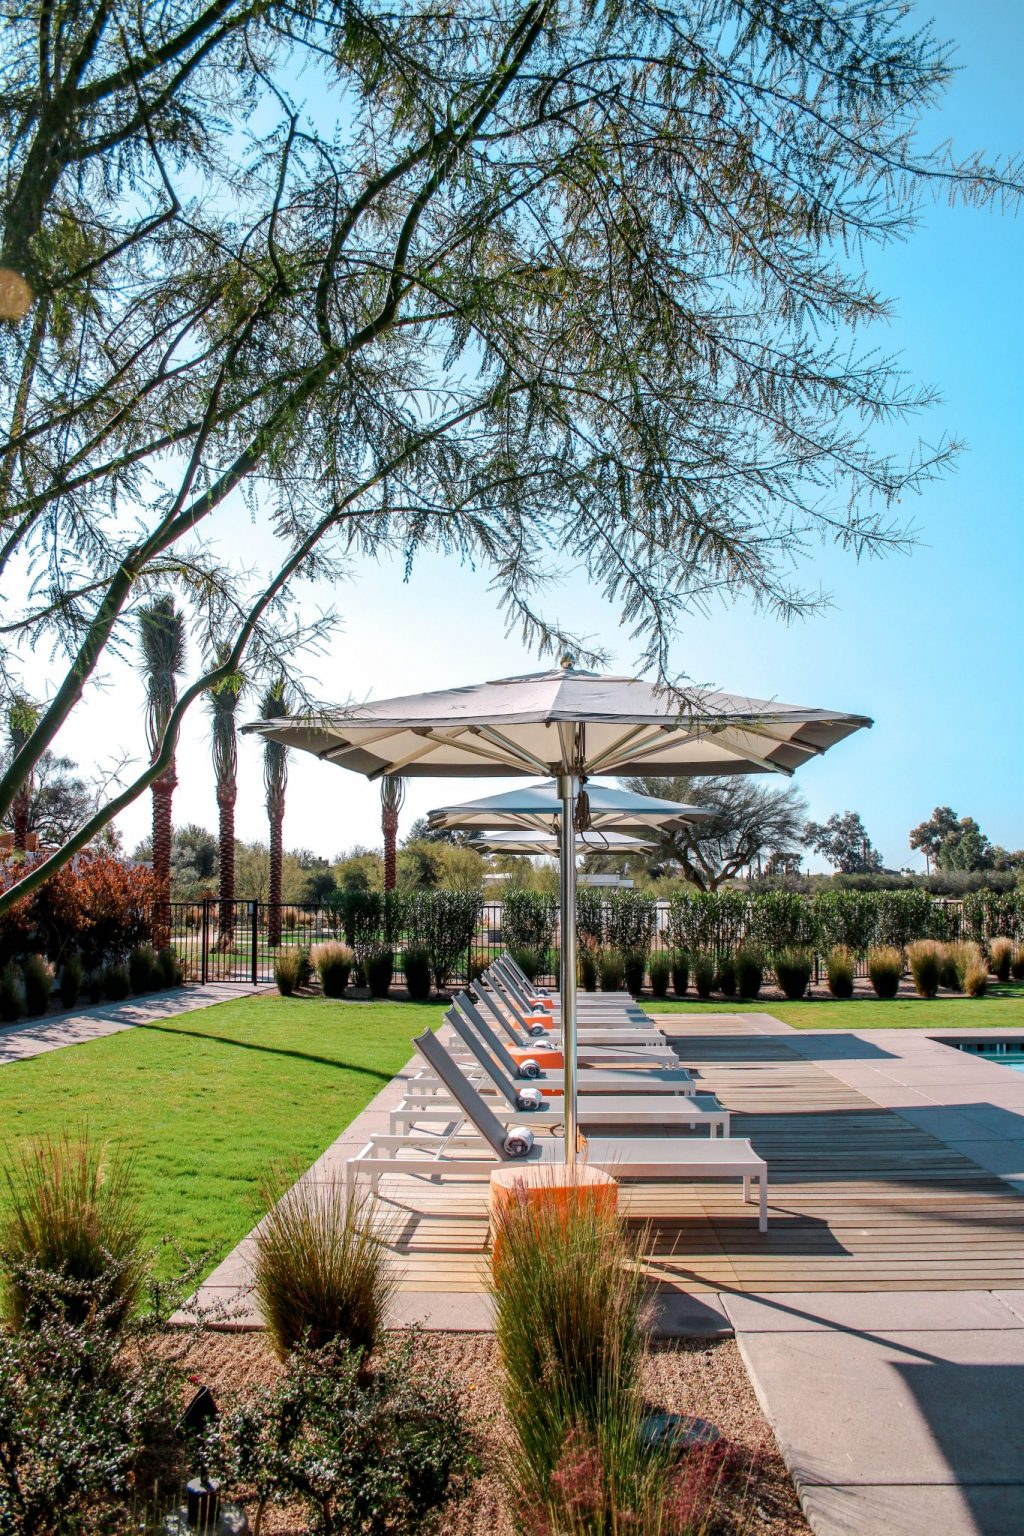 Hyatt Andaz Scottsdale: Your desert luxury stay awaits